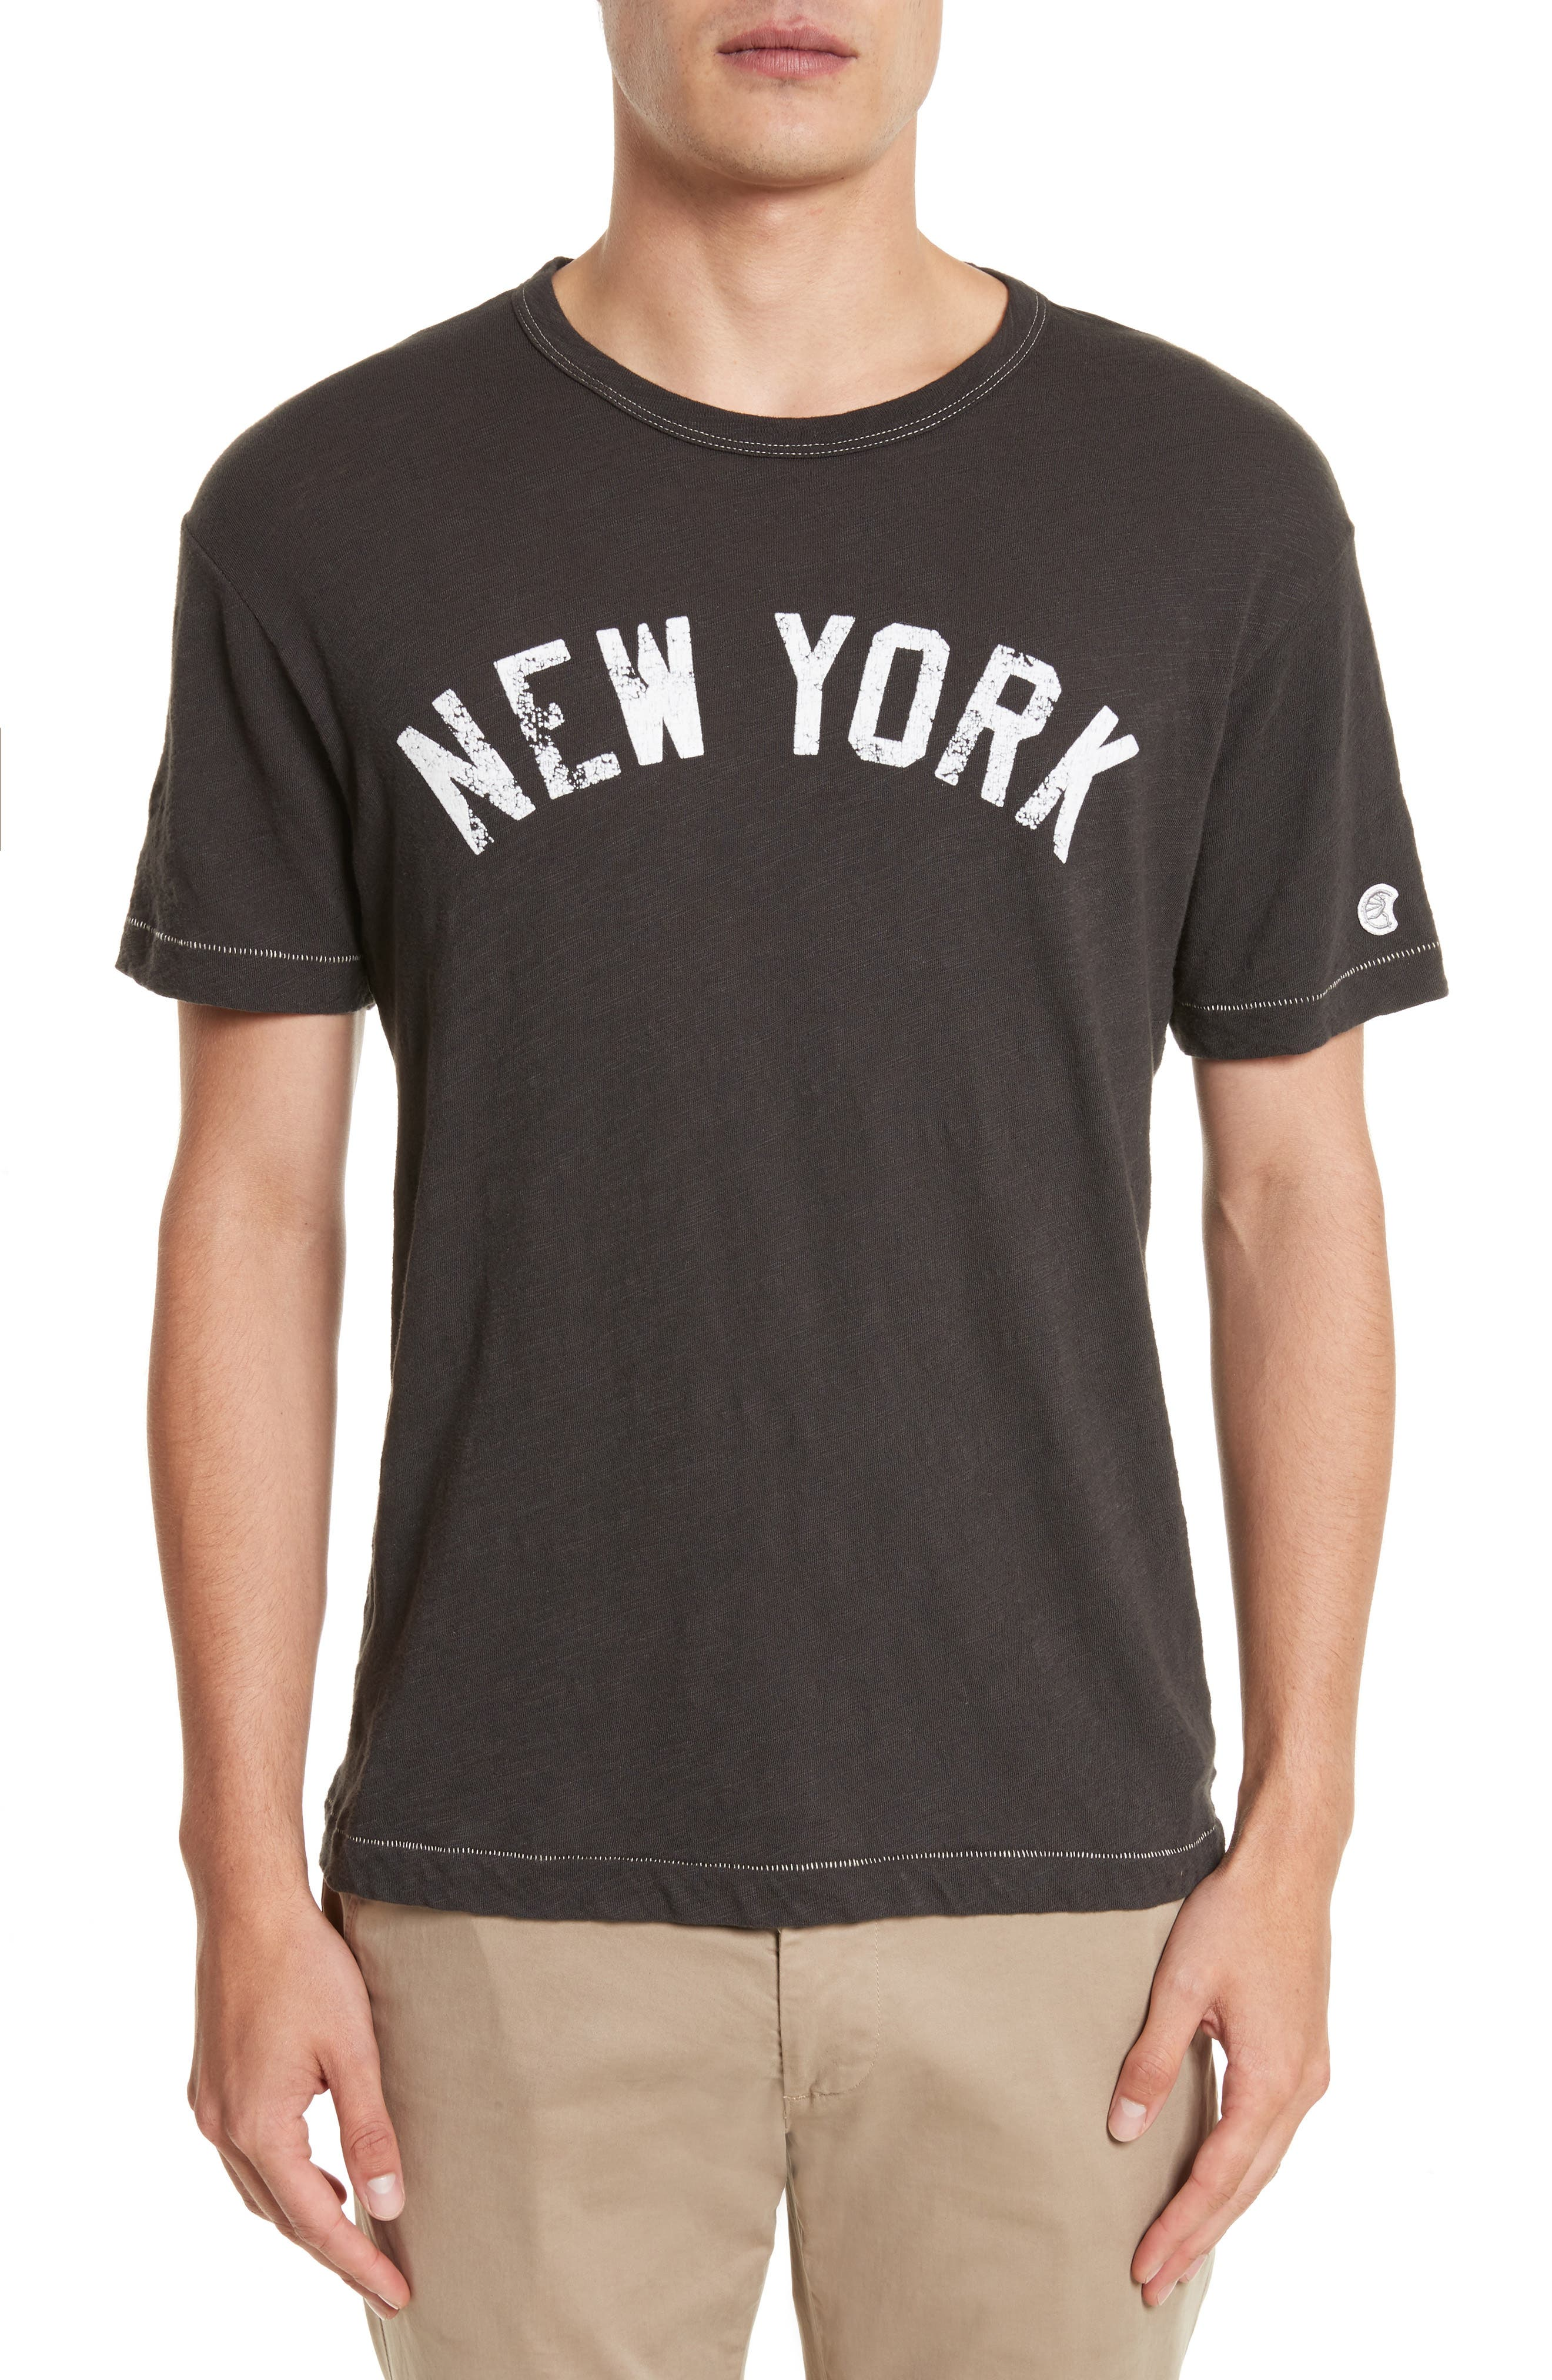 Main Image - Todd Snyder New York T-Shirt